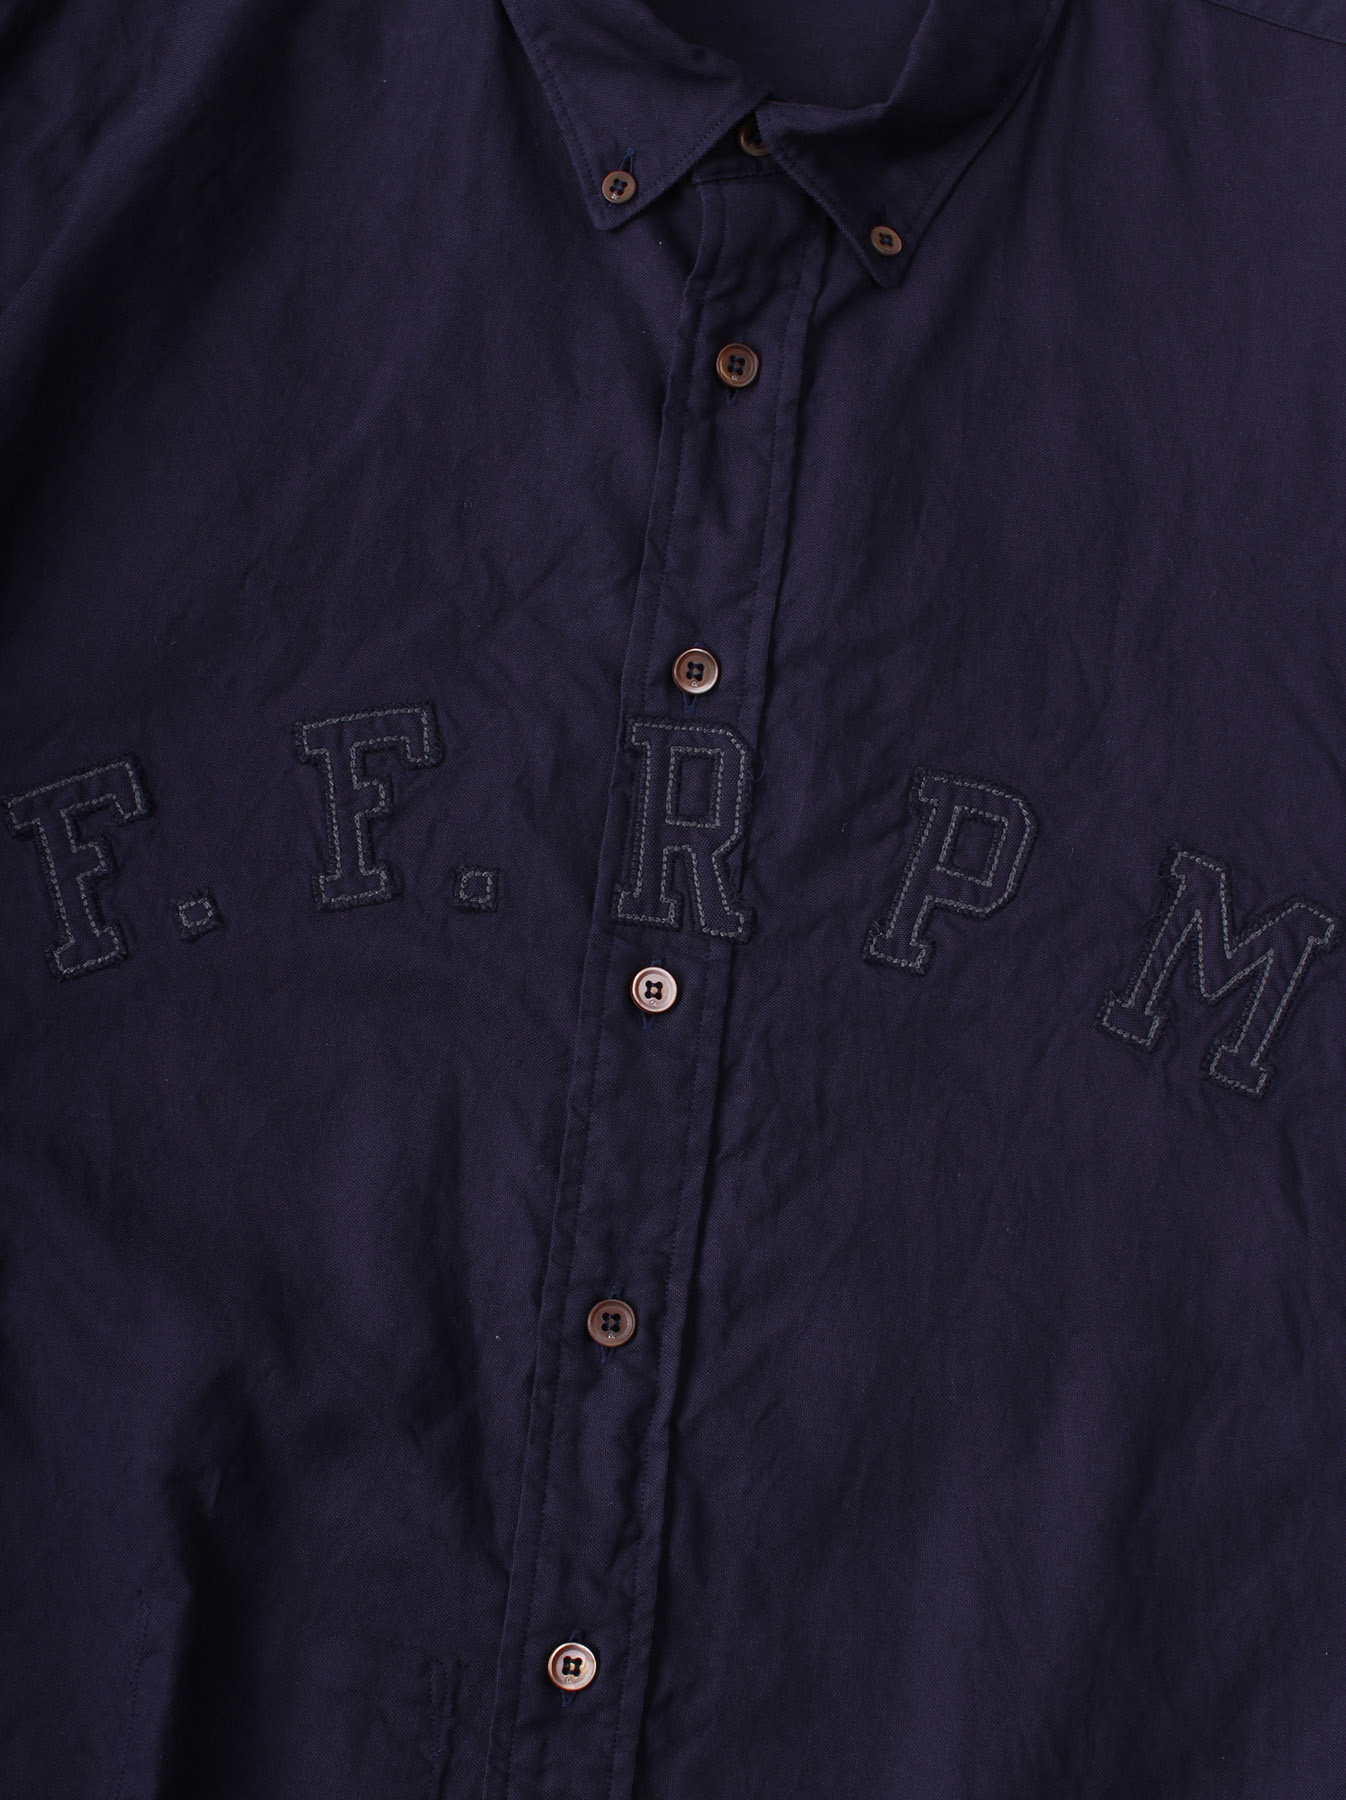 Oxford College Ford Button Down Shirt-9